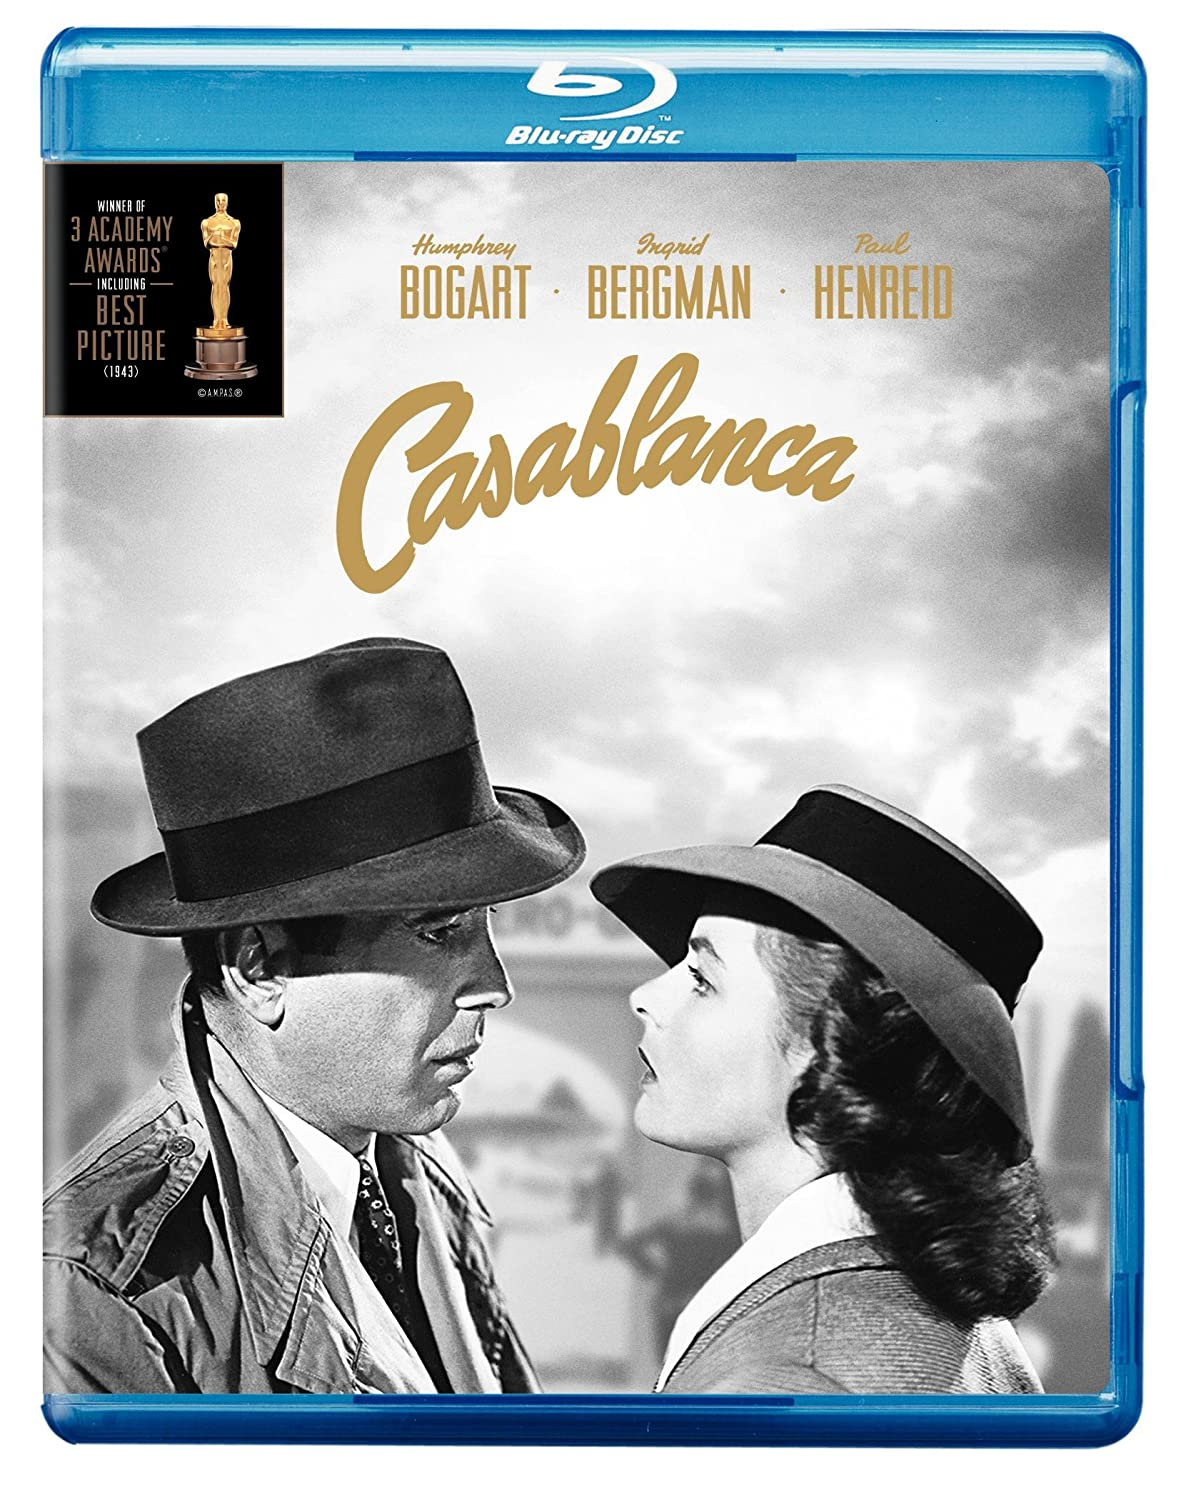 Amazon.in: Buy Casablanca [Blu-ray] DVD, Blu-ray Online at Best Prices in  India | Movies & TV Shows